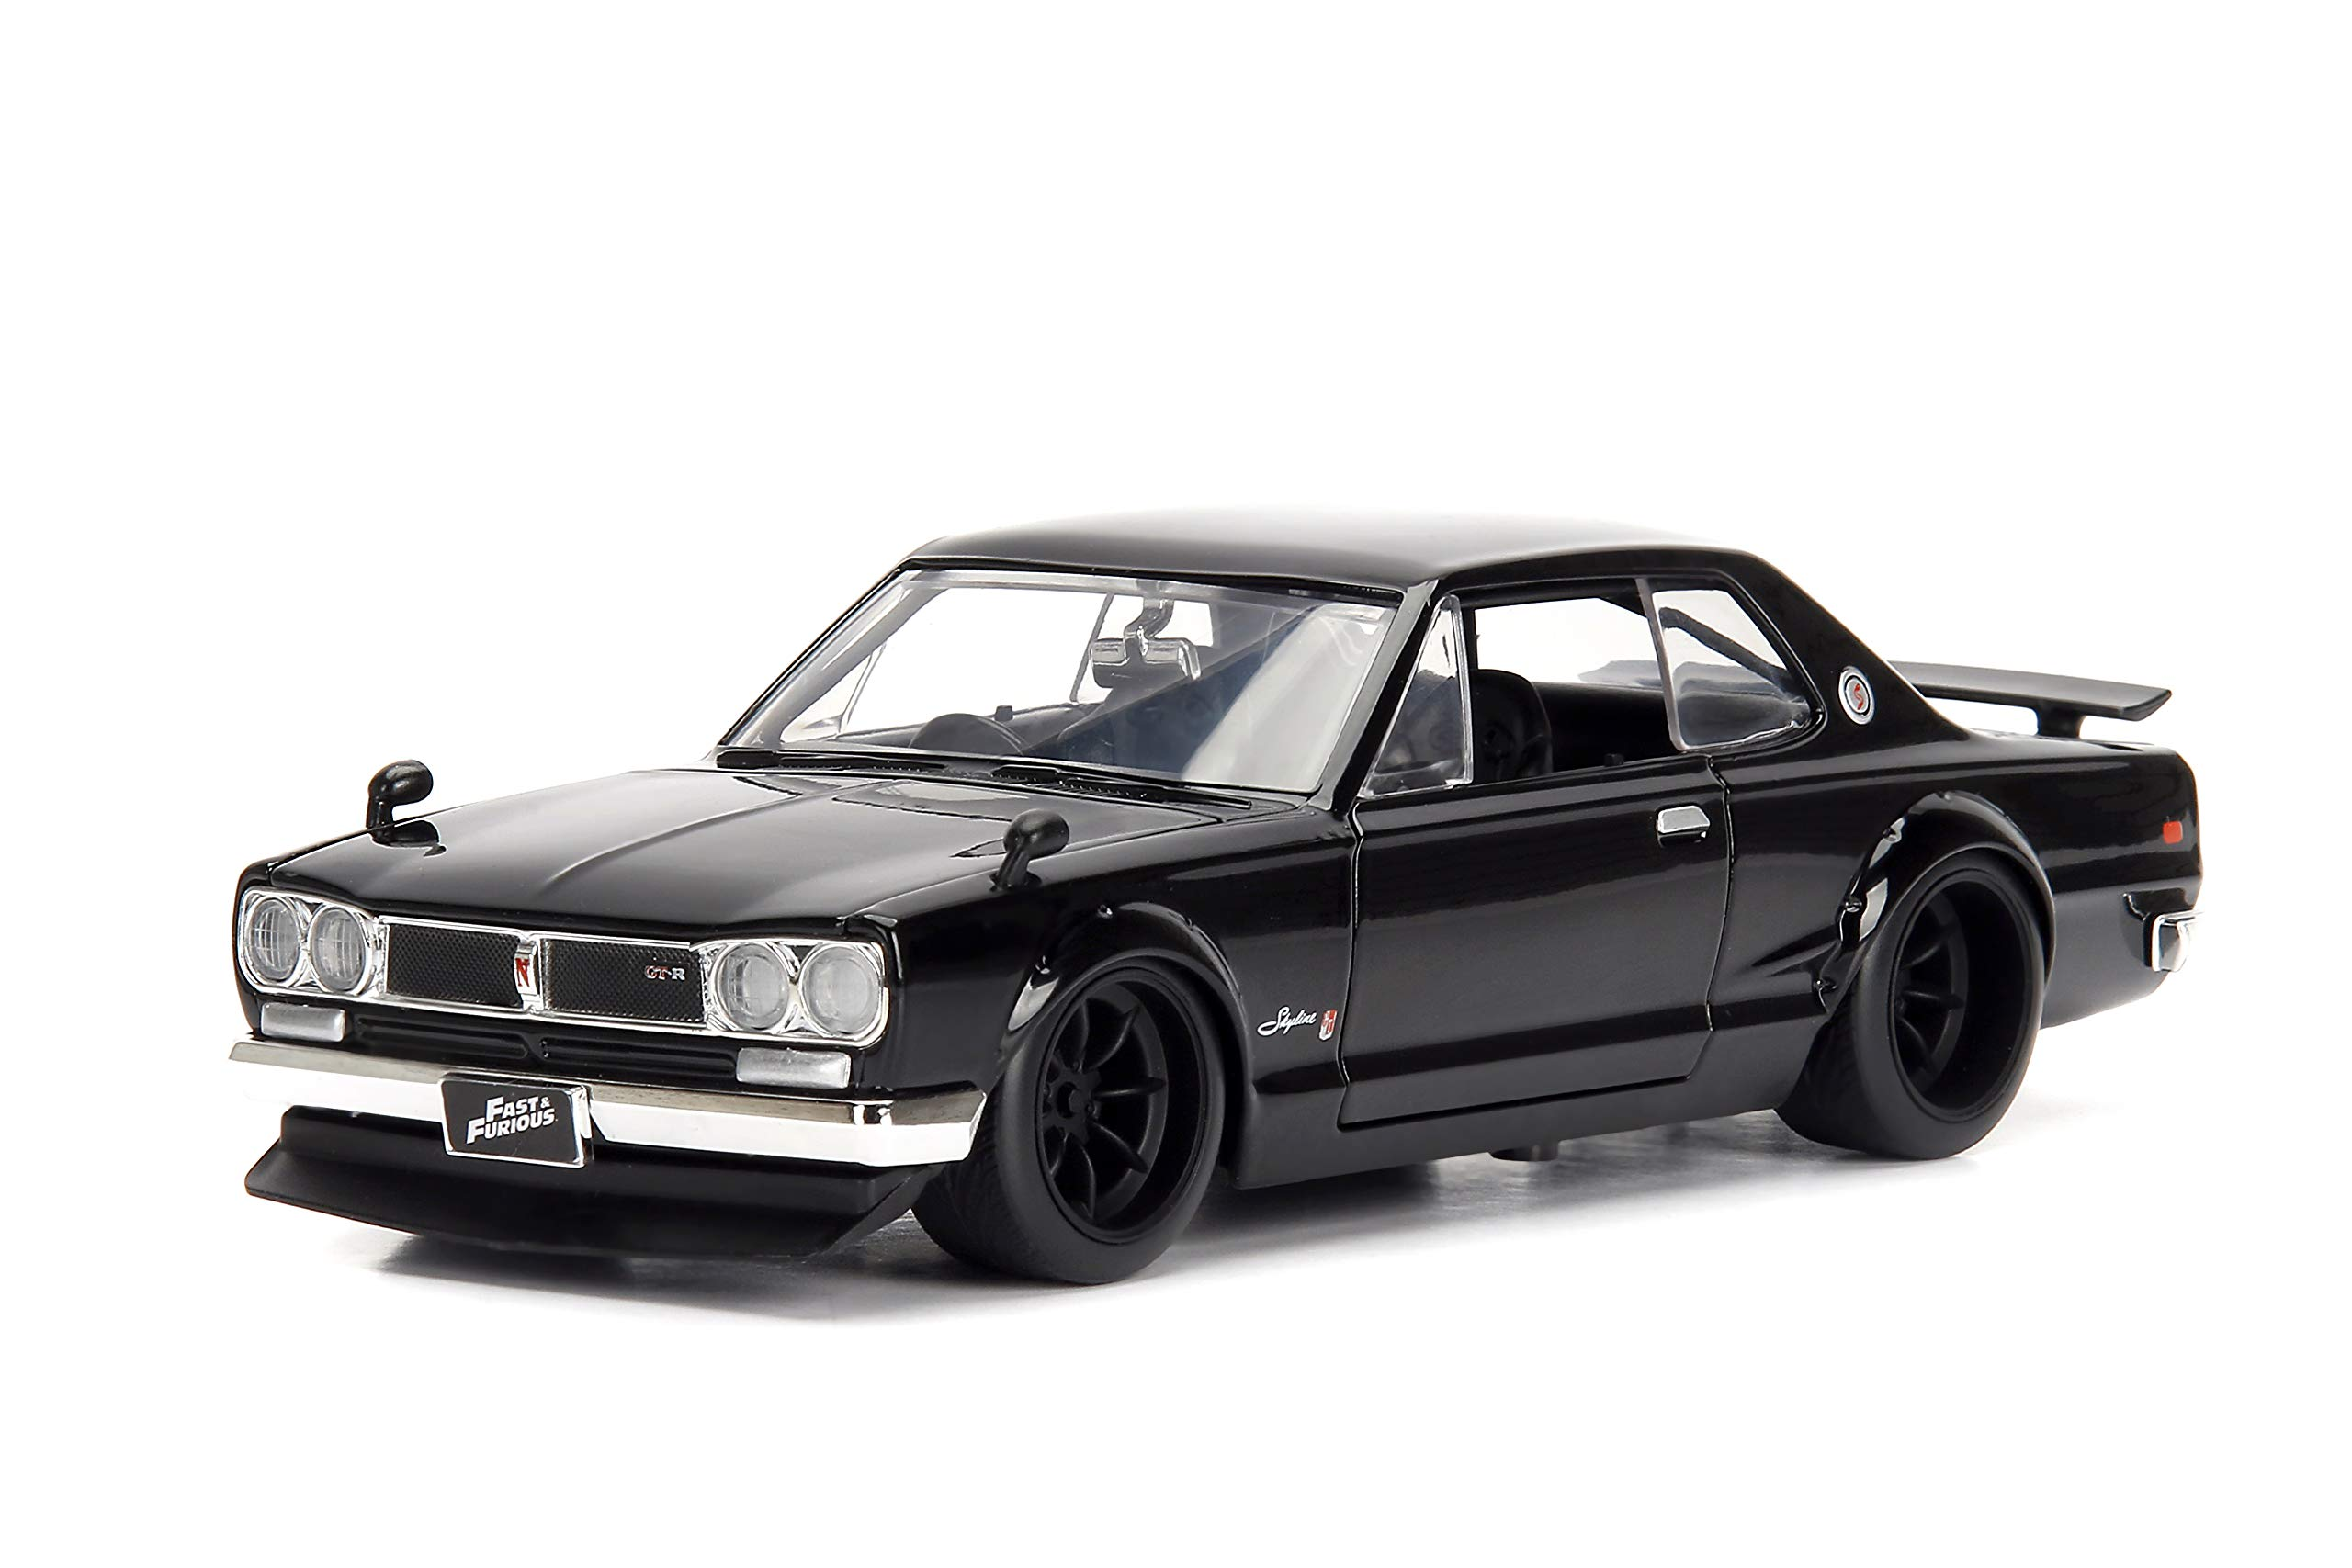 Jada Toys Fast & Furious 1:24 Brians's Nissan Skyline 2000 GT-R Die-cast Car, Toys for Kids and Adults (JA99686) , Black